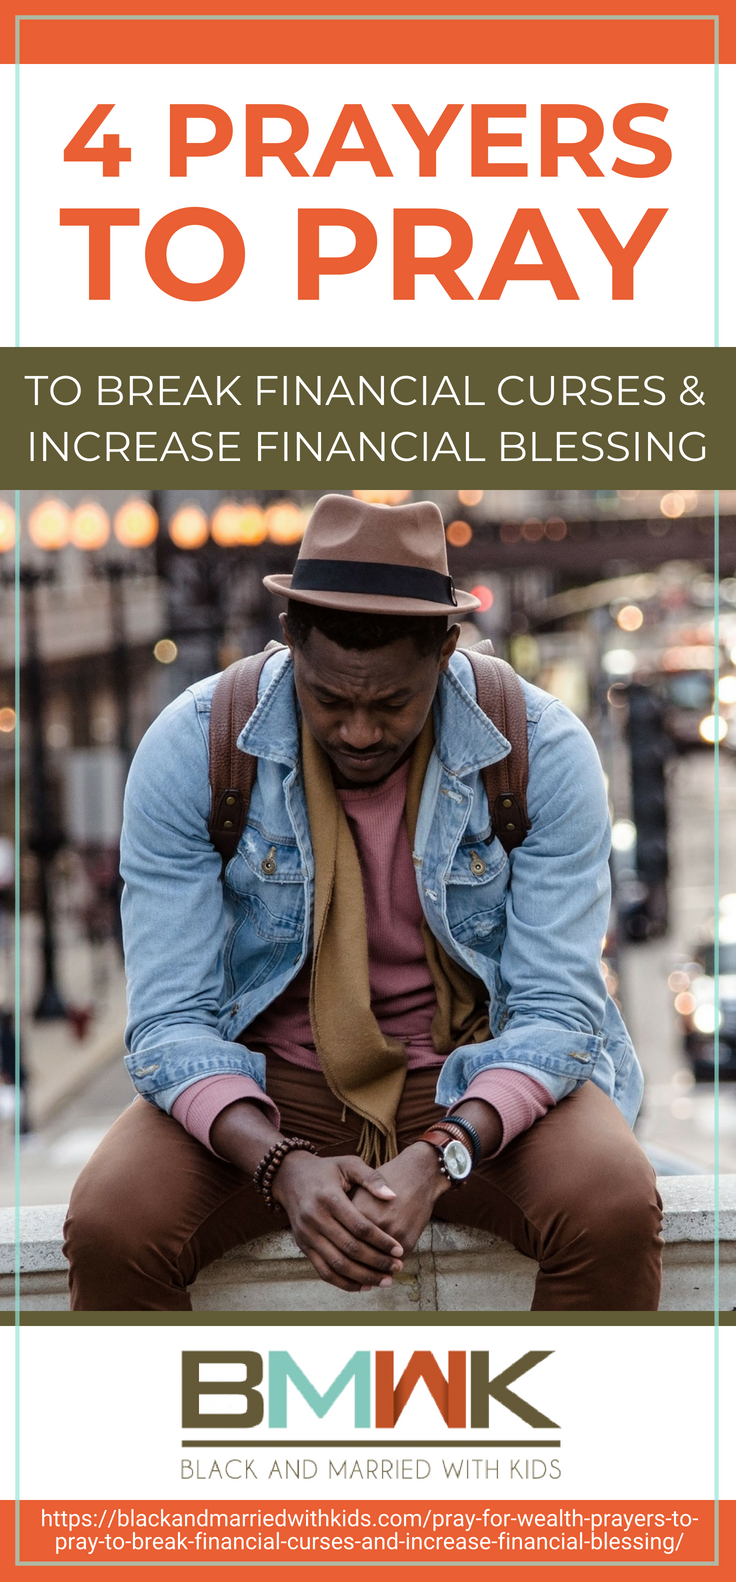 Here are the 4 Prayers to Pray for Wealth | Black and